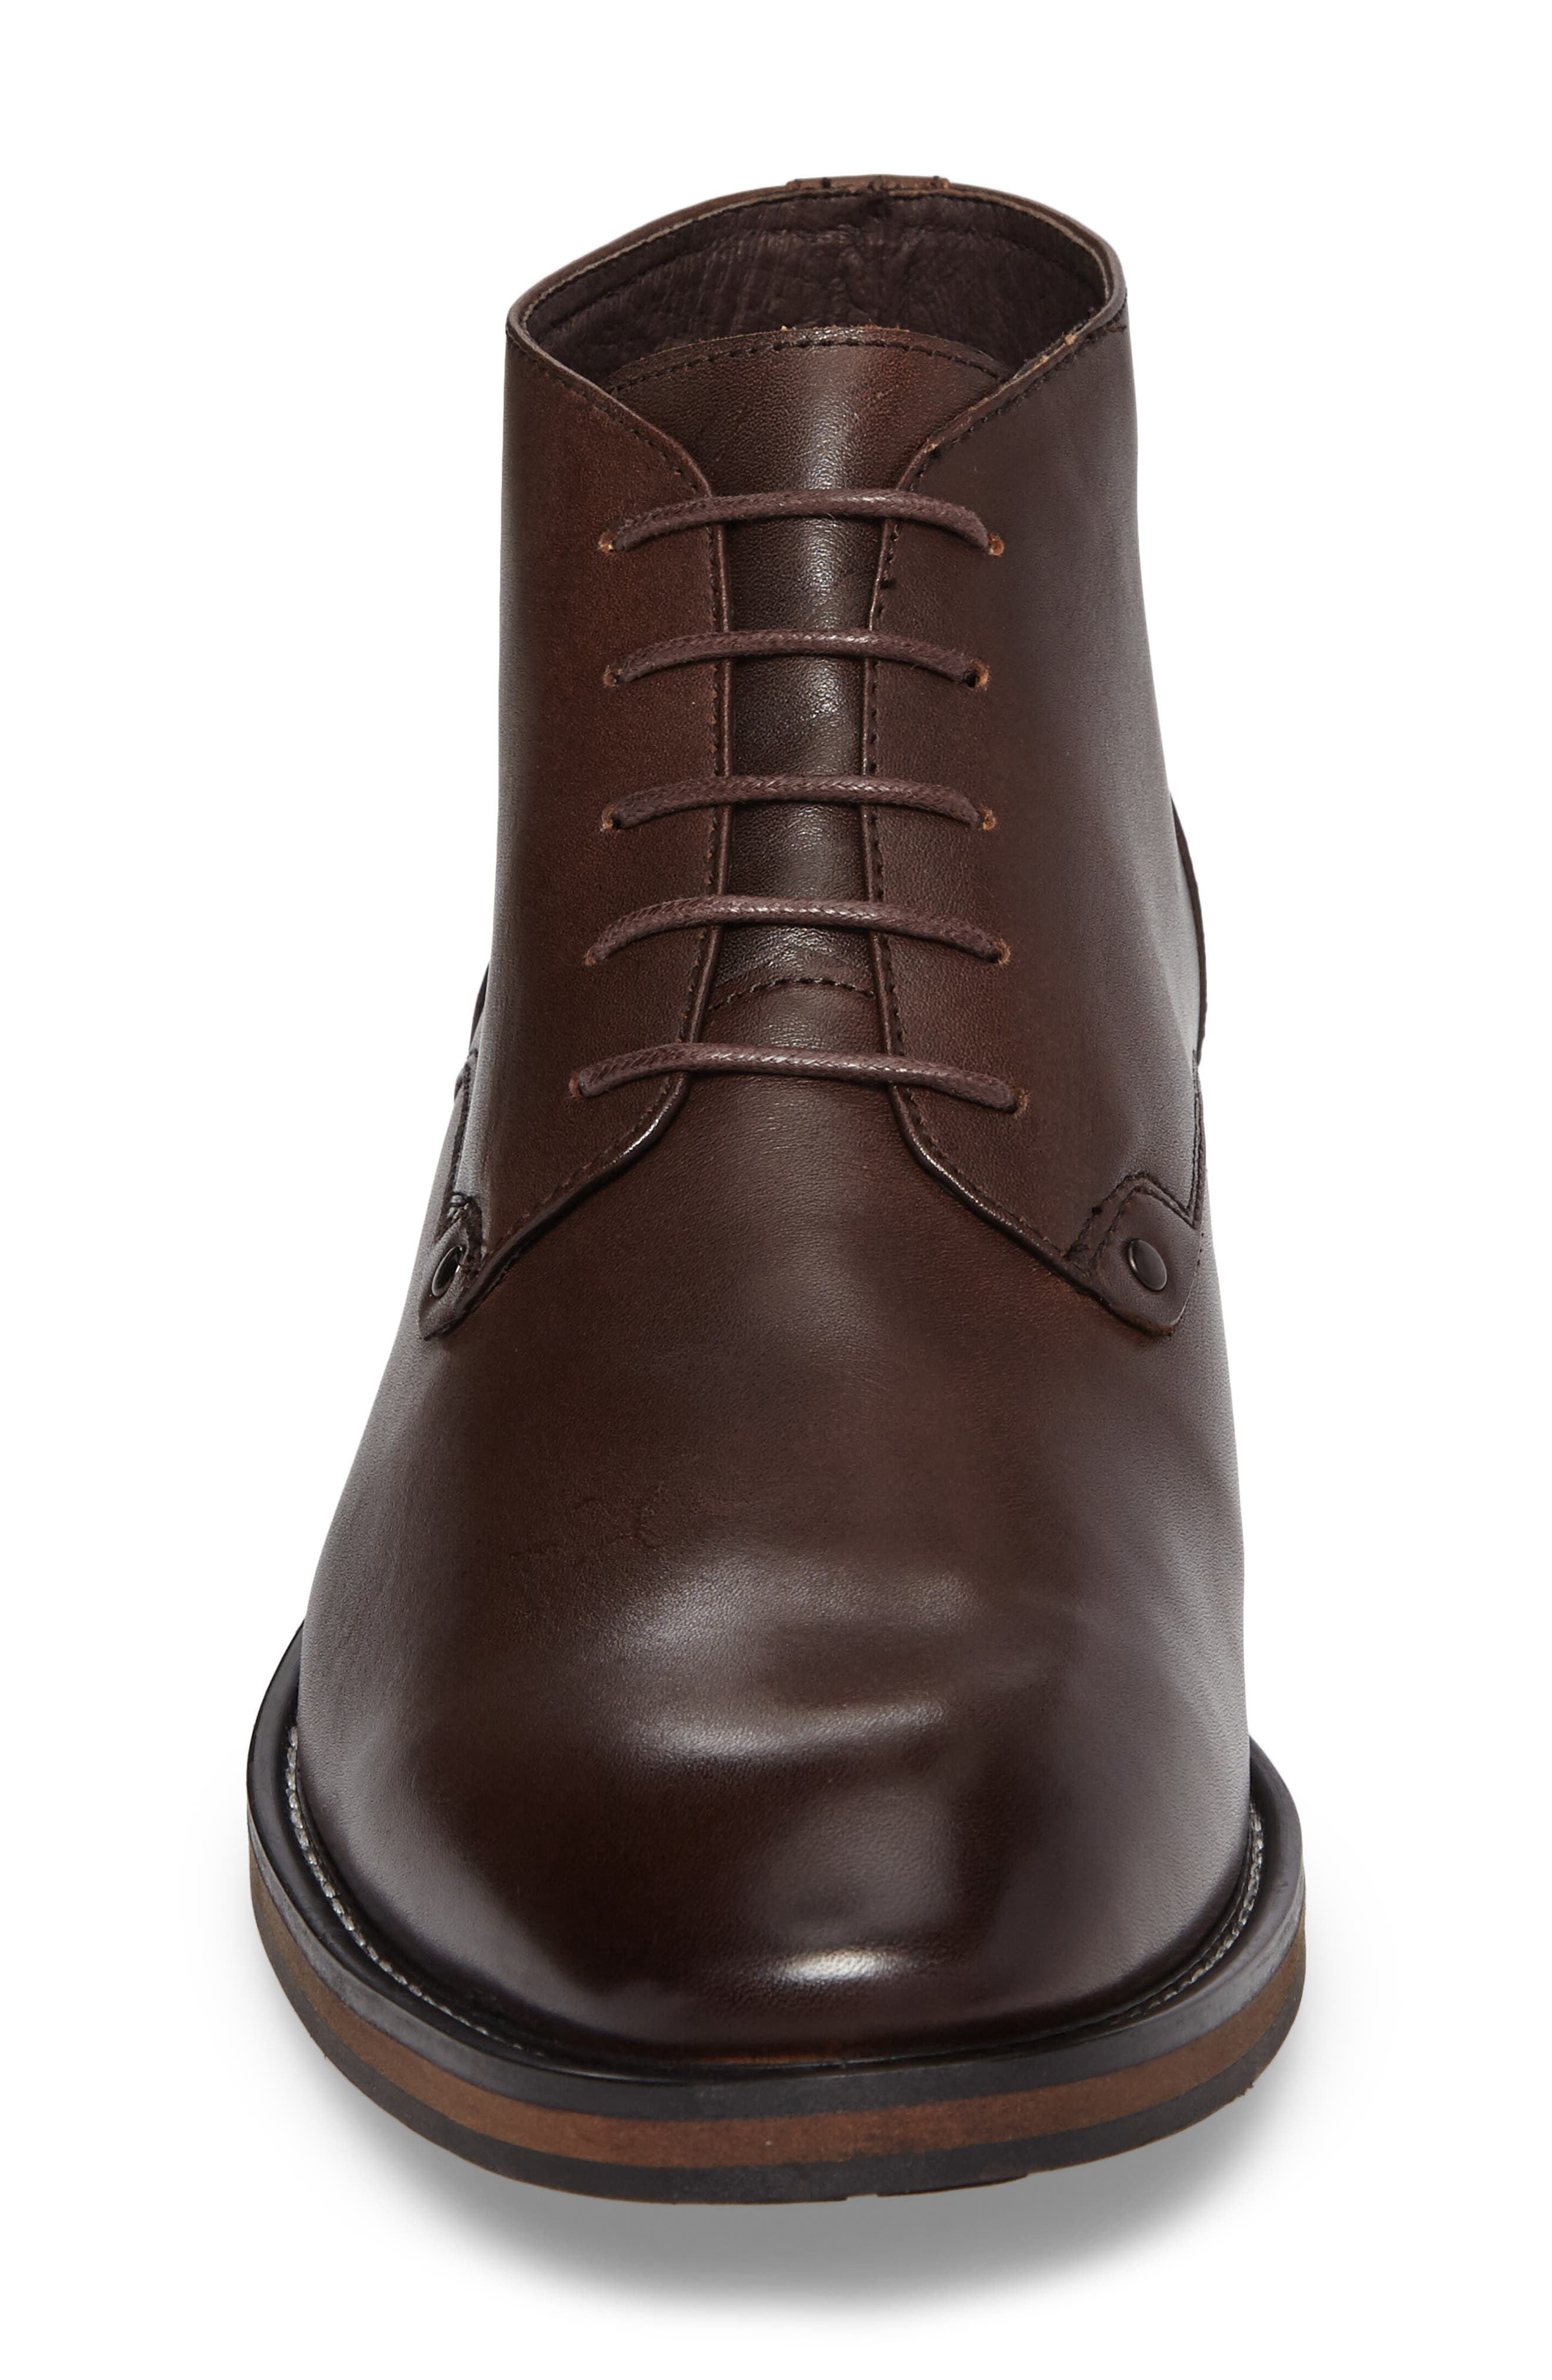 Malta Low Boot,                             Alternate thumbnail 4, color,                             Brown Leather